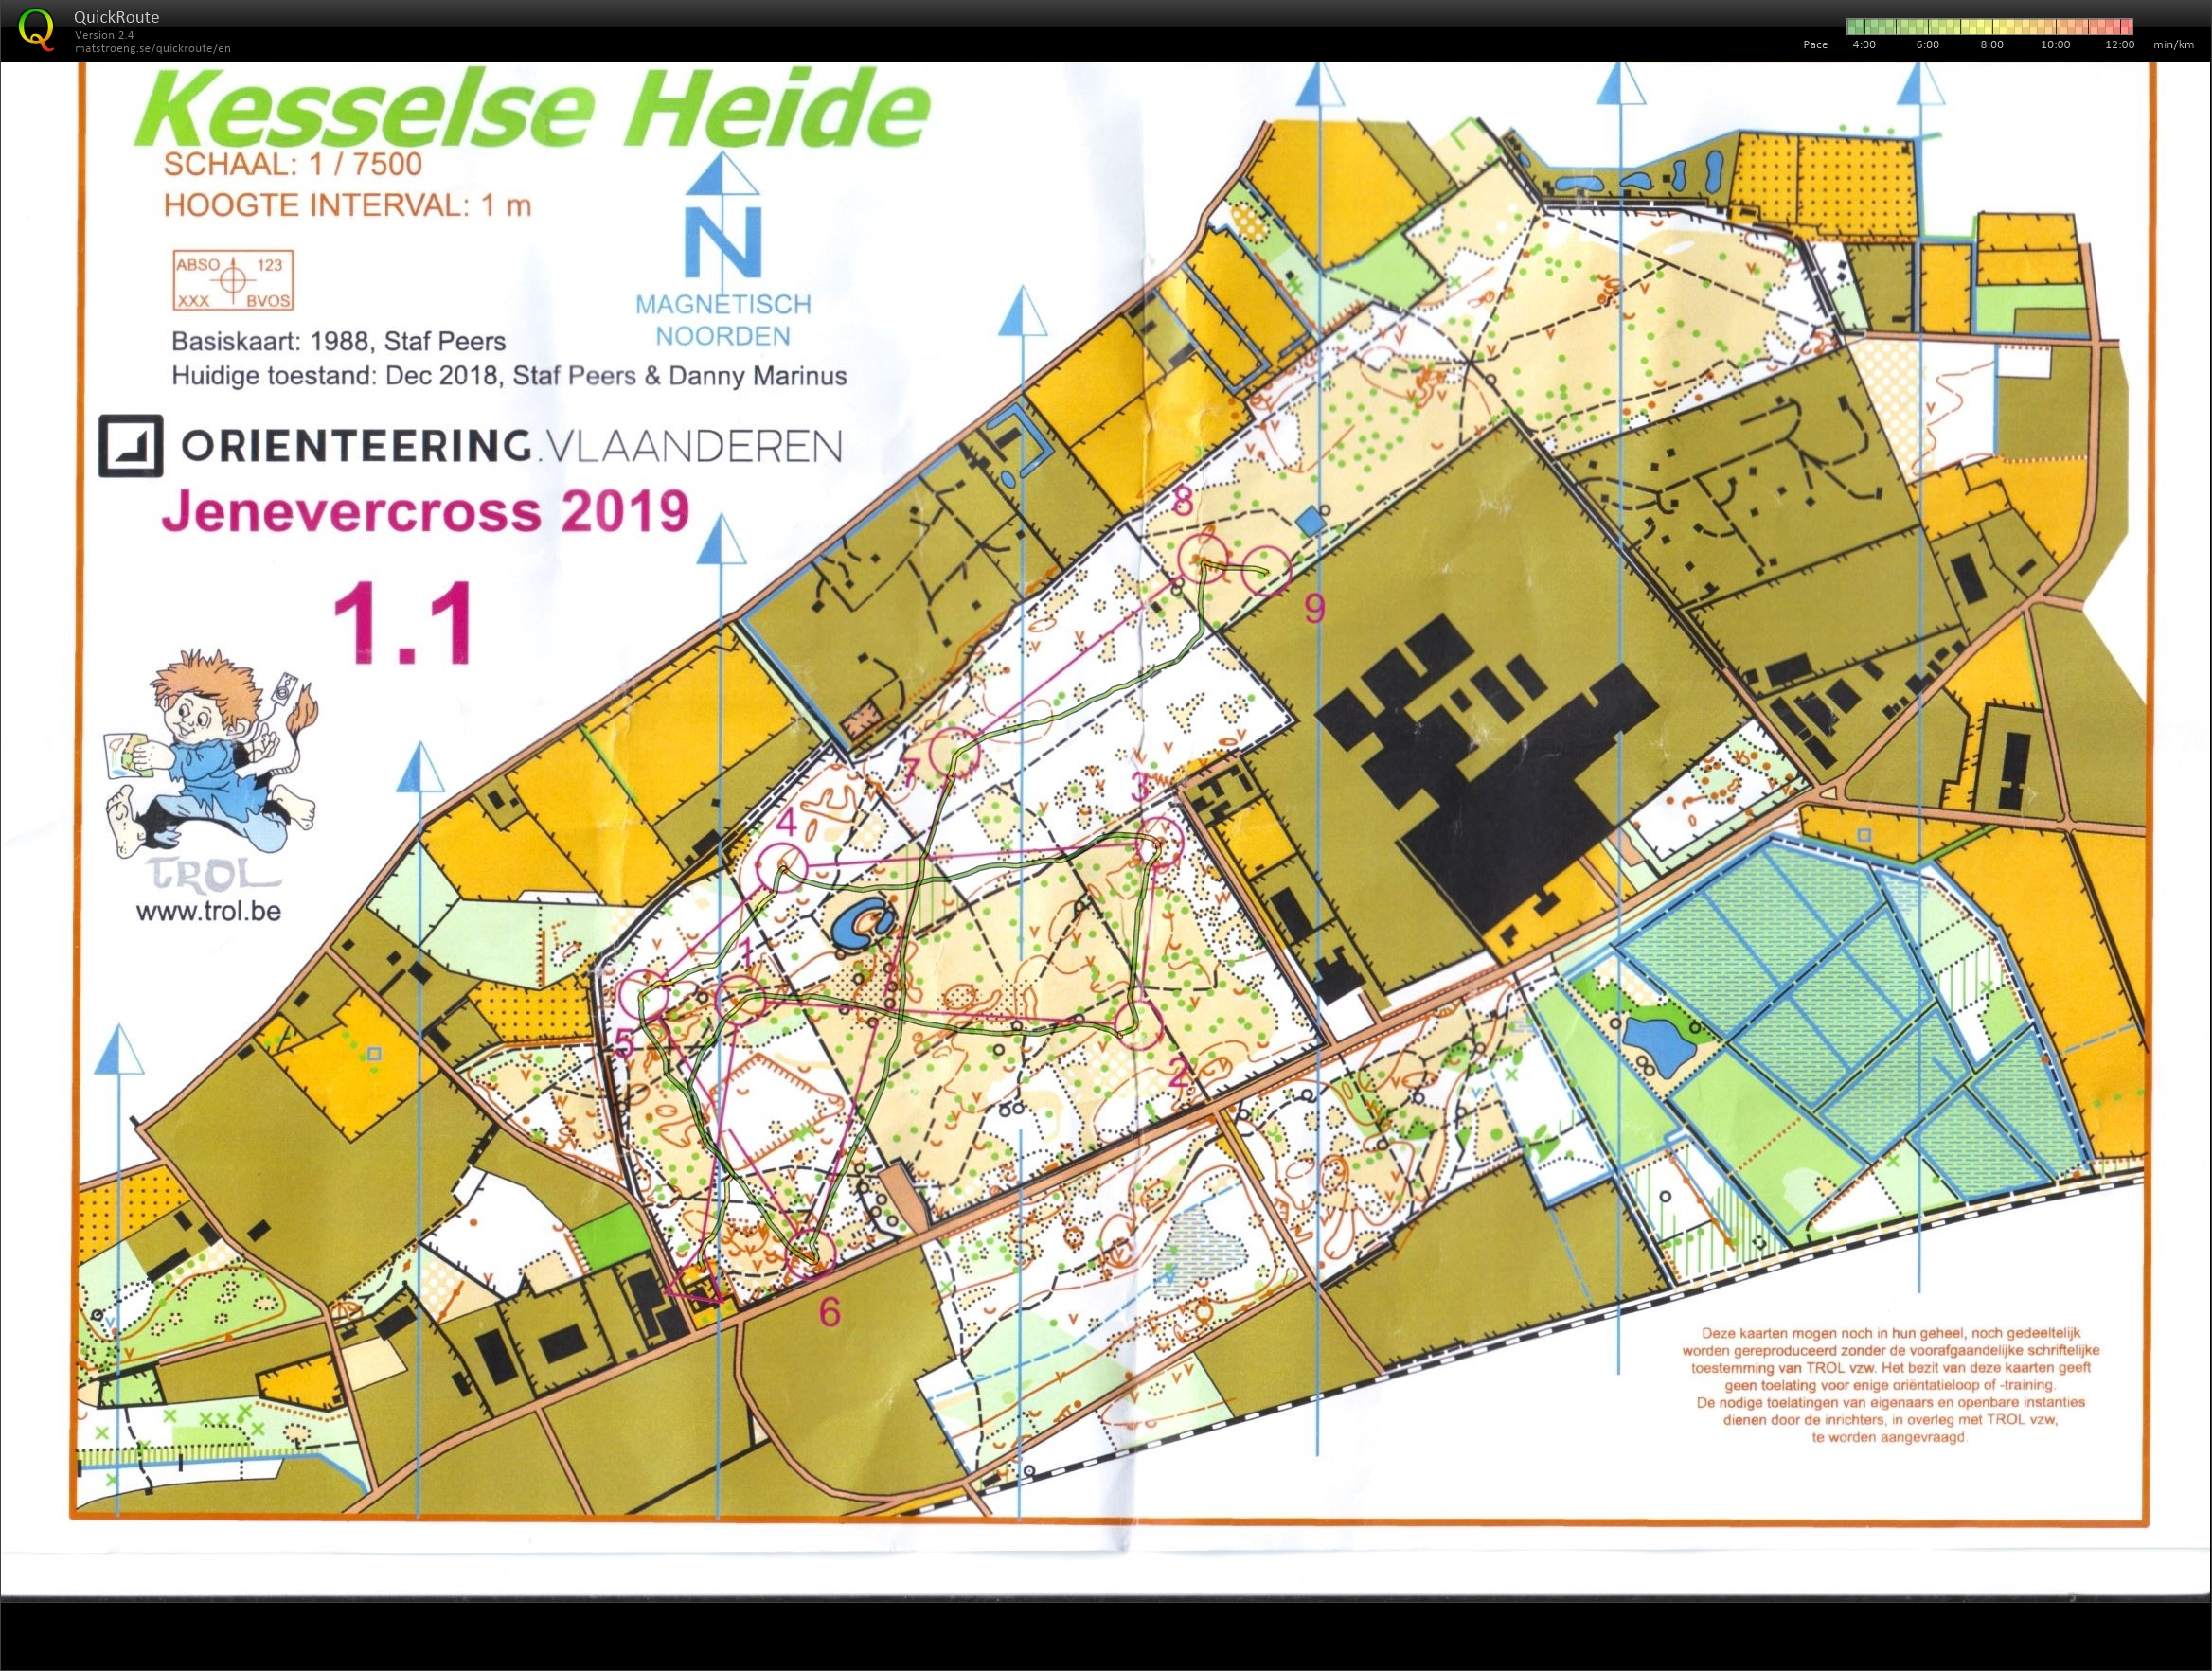 Night Orienteering Kesselse Heide deel 1 (04/01/2019)